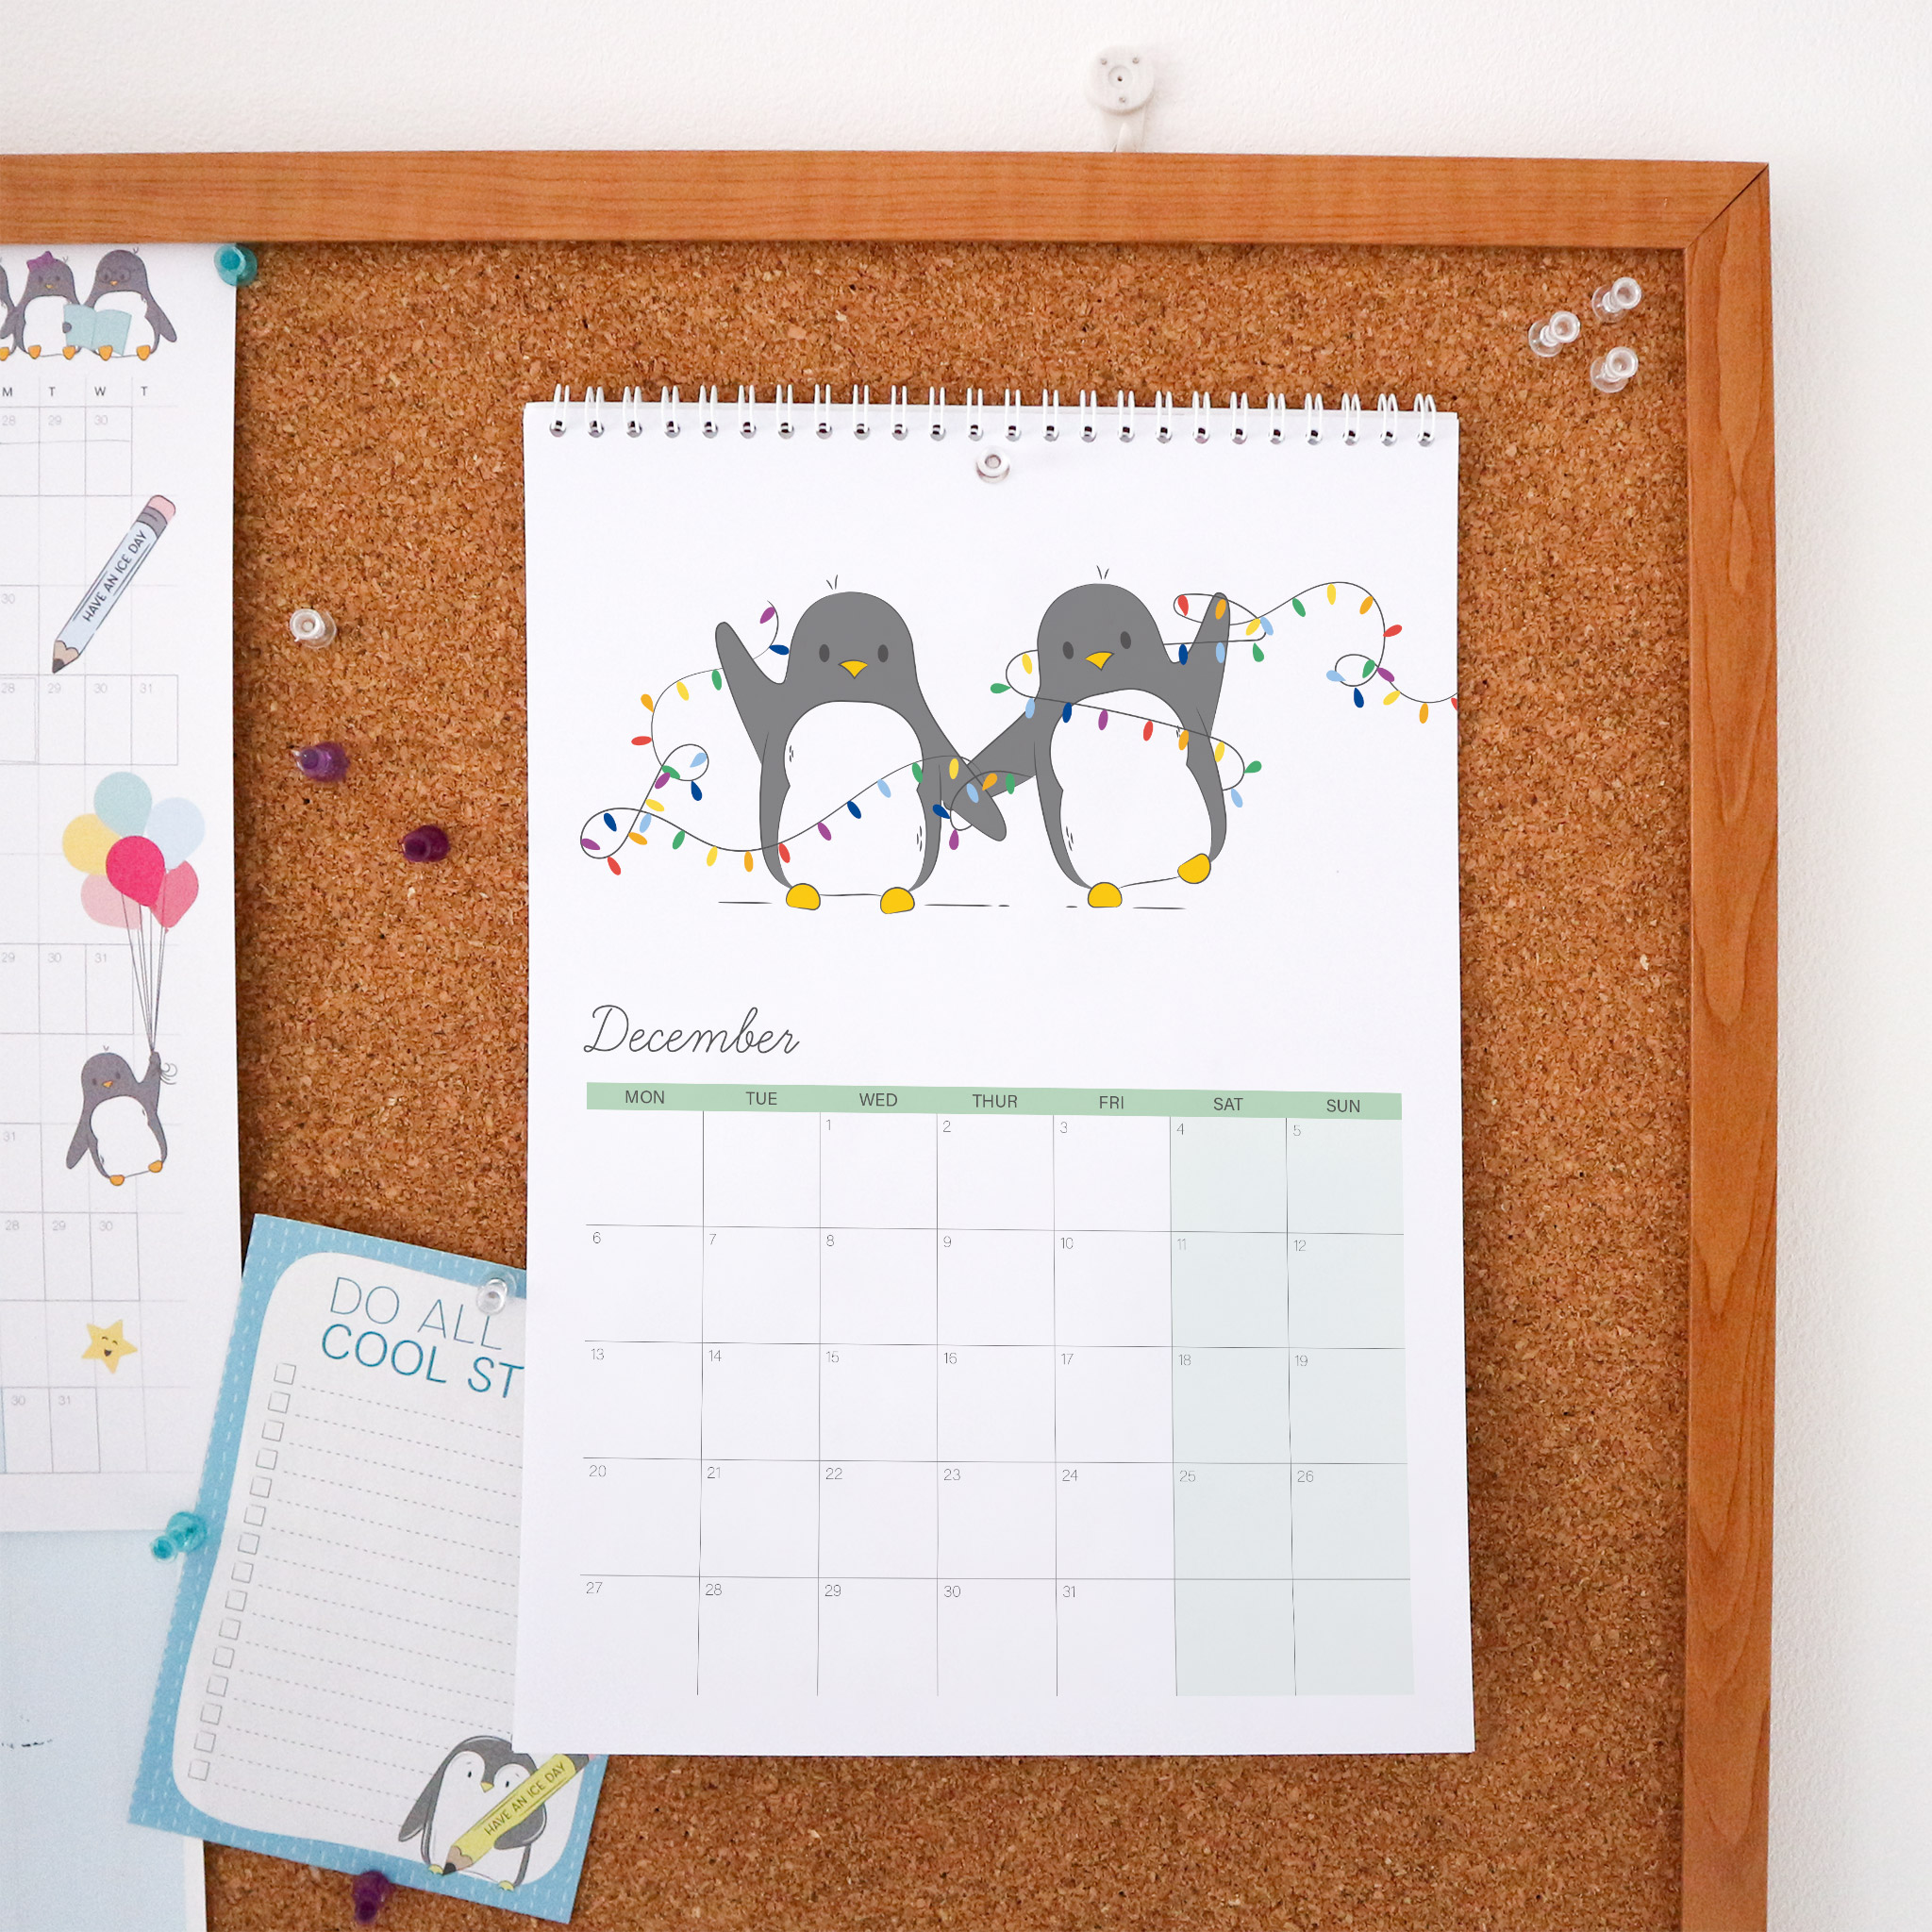 The December page of the Penguin Calendar is an illustration of 2 penguins all tangled up in some Christmas lights. This Calendar is wire bound A4 and is styled against a cork board background.